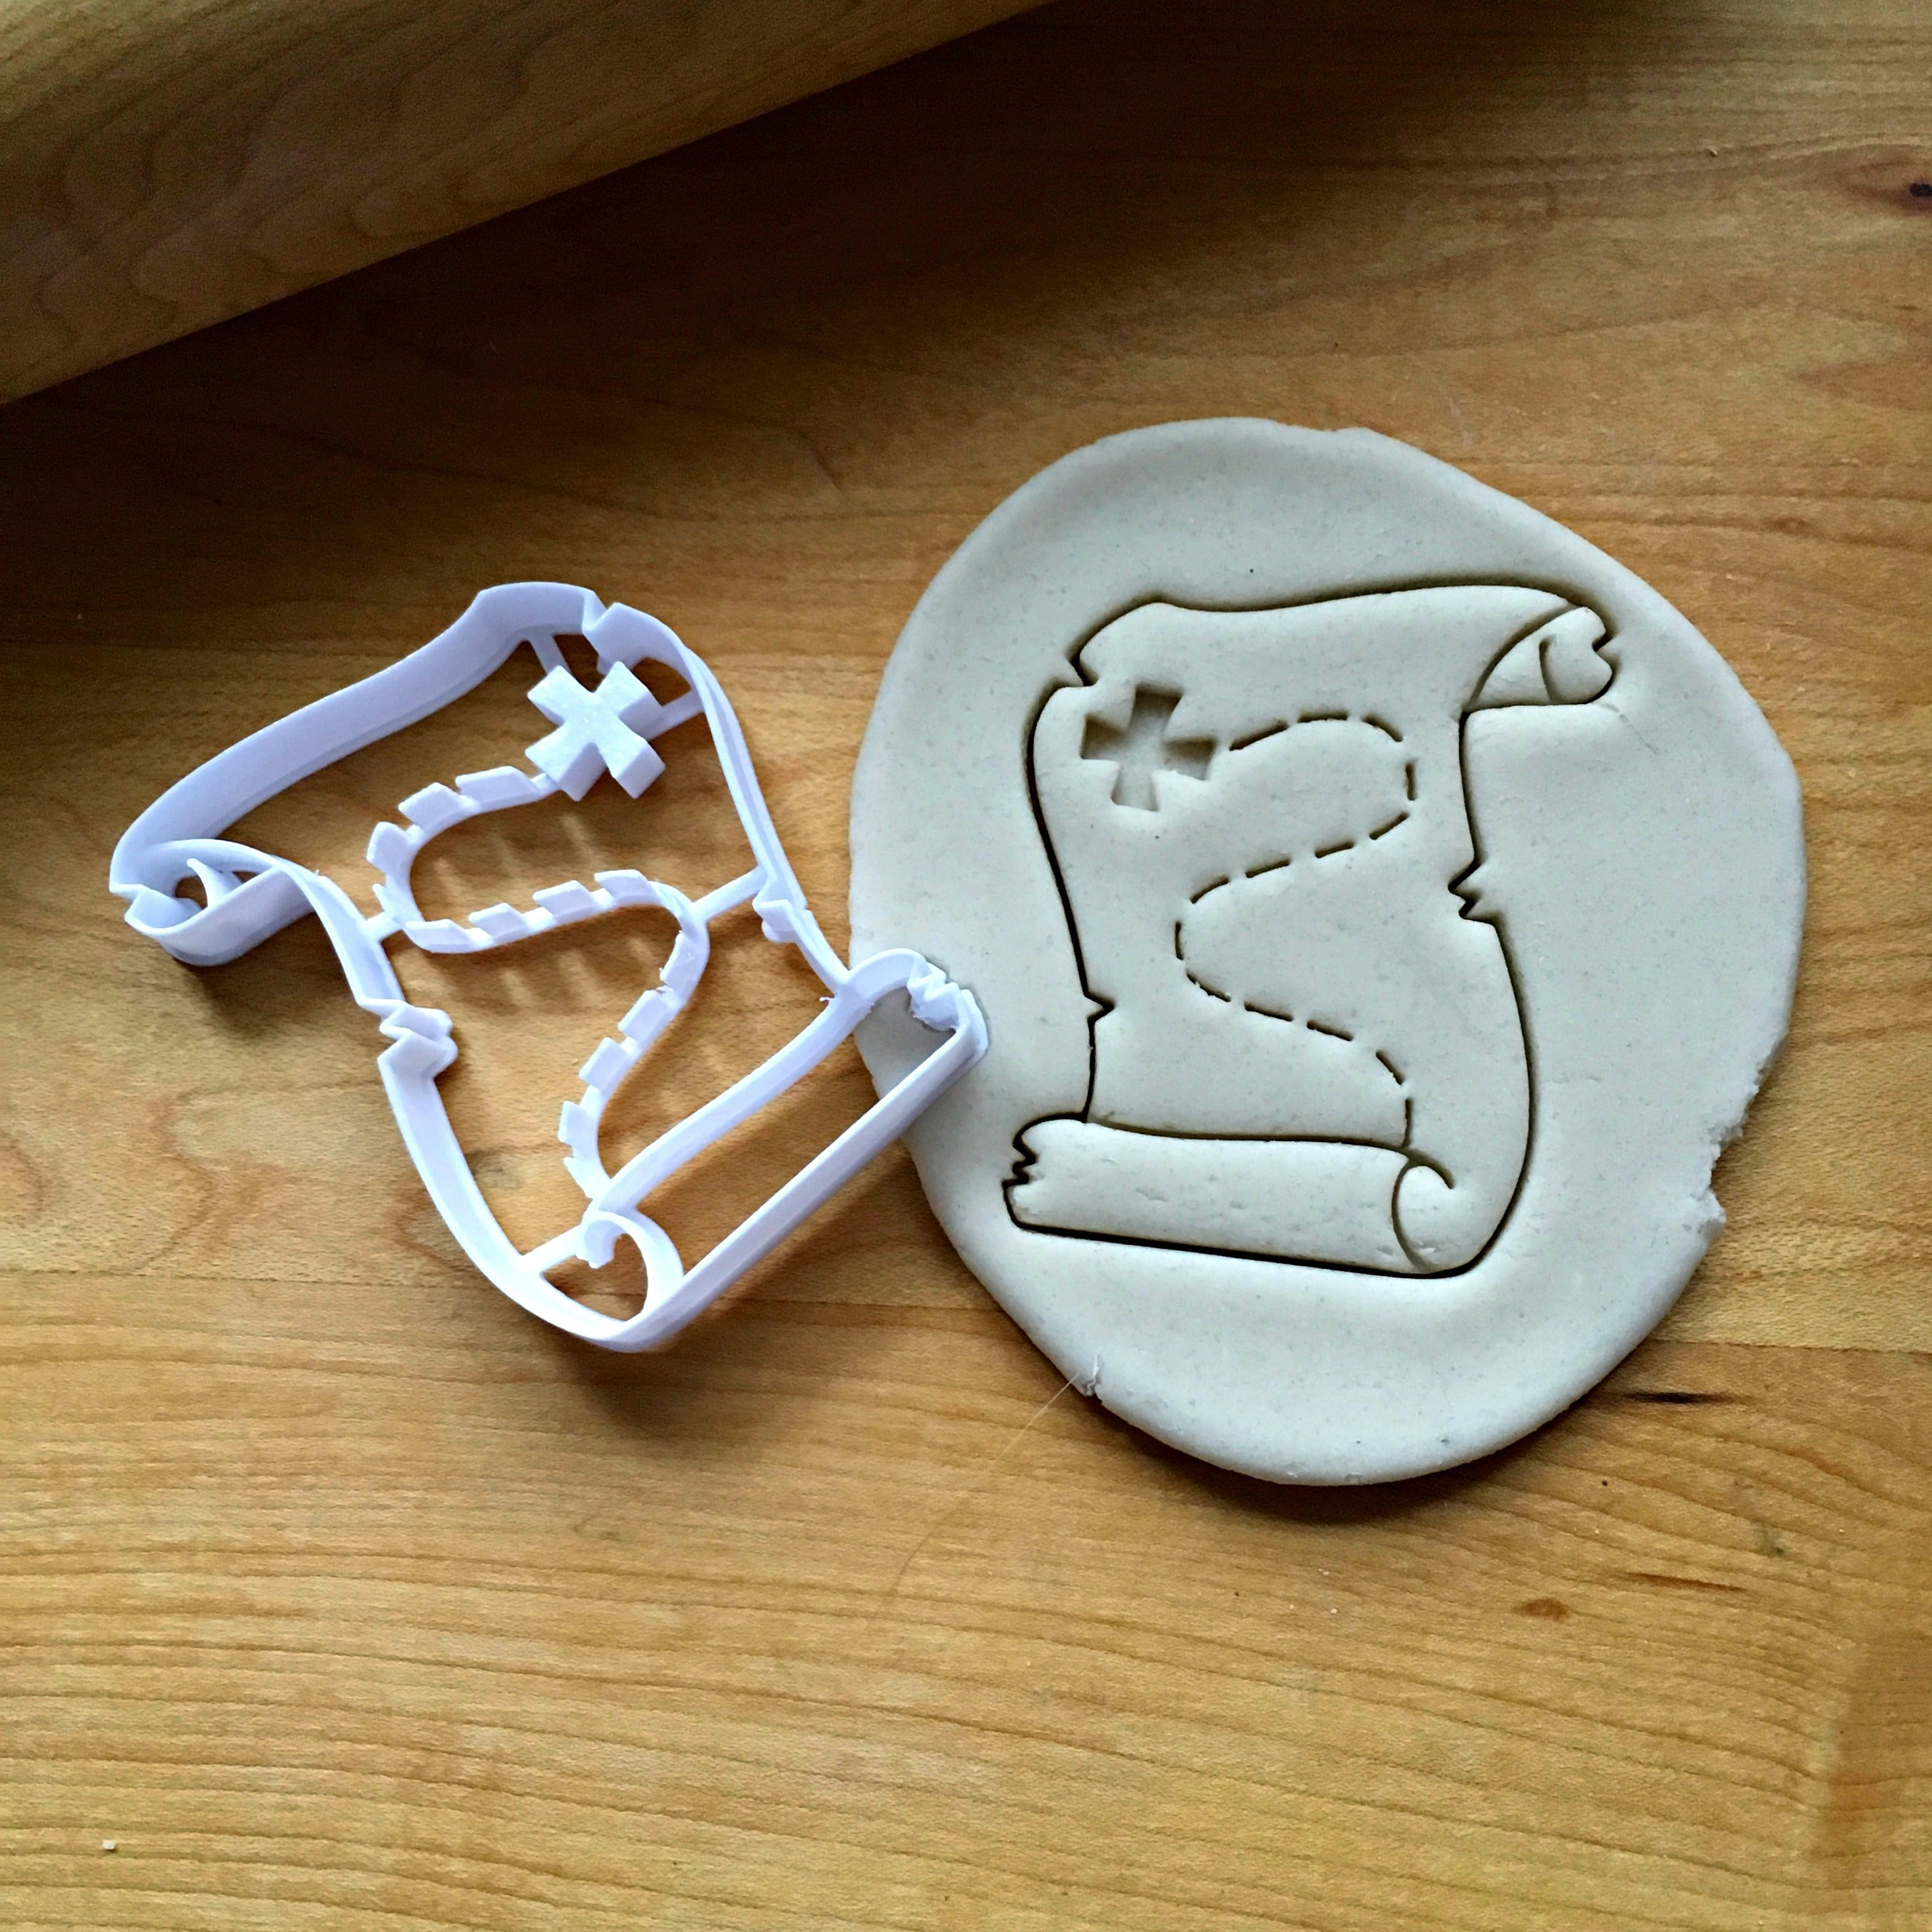 Treasure Map Cookie Cutter/Dishwasher Safe